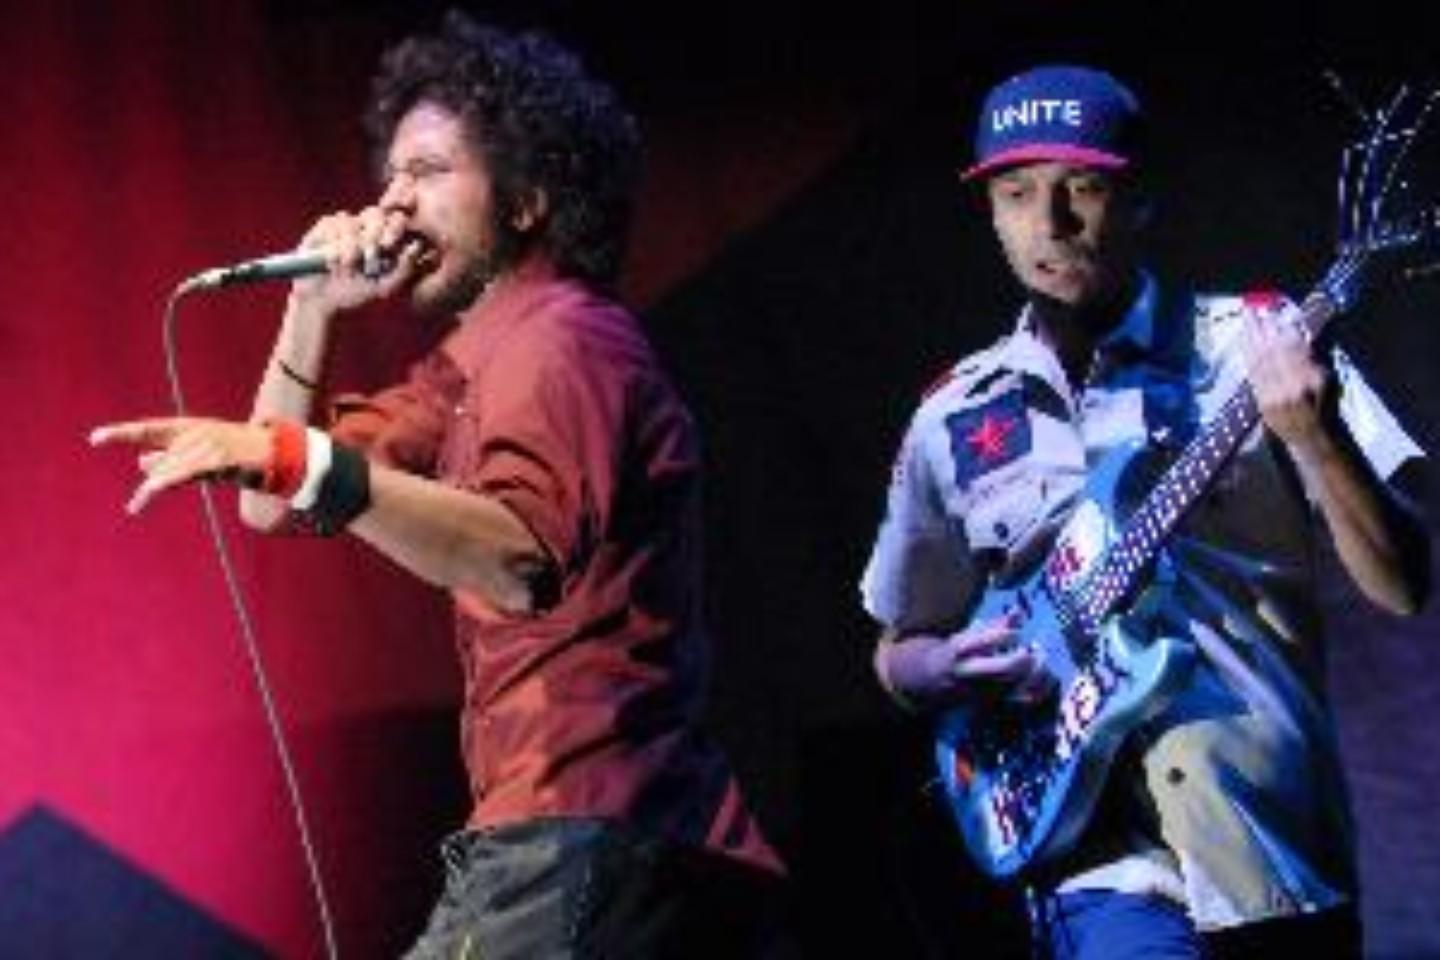 Rage Against The Machine Tour 2020 Buy Tickets